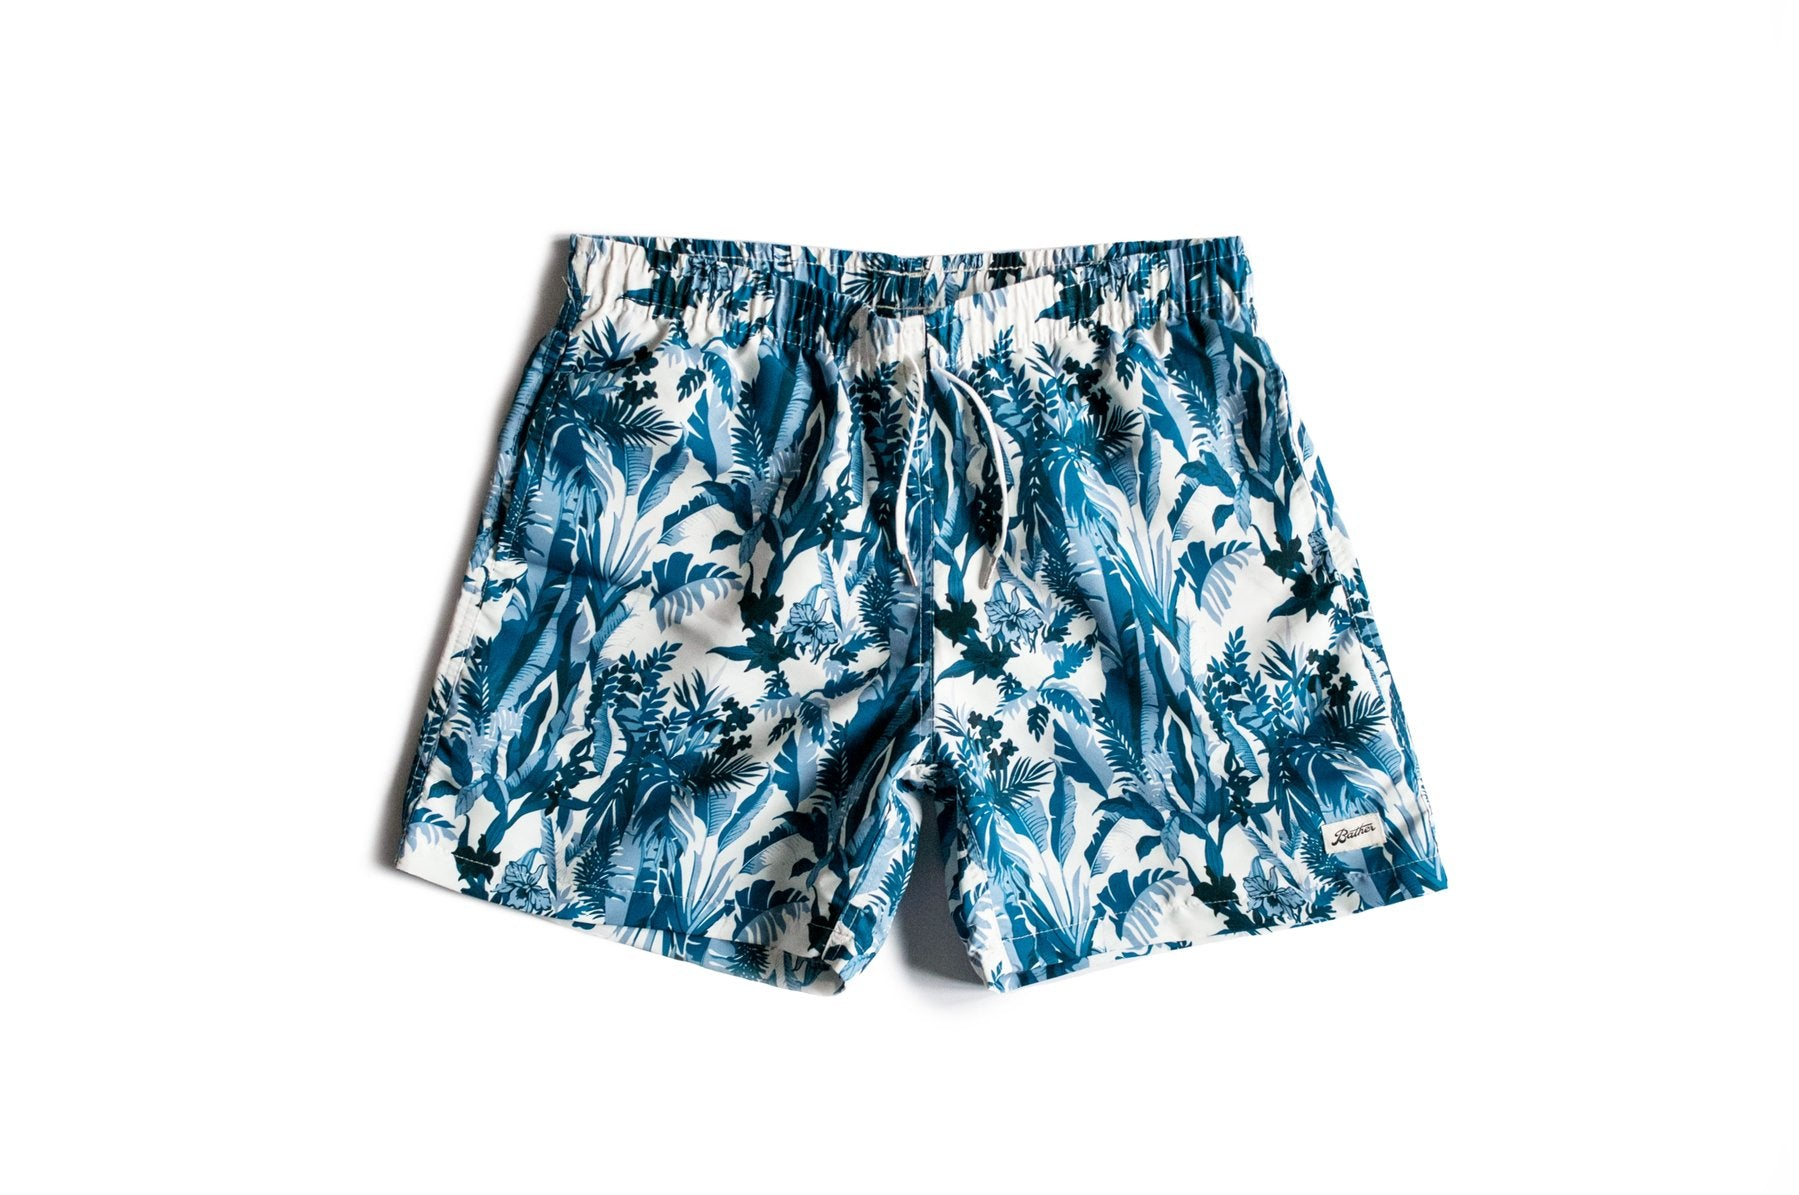 BATHER M'S SHORTS BLU M TROPICAL FOREST SWIM TRUNK